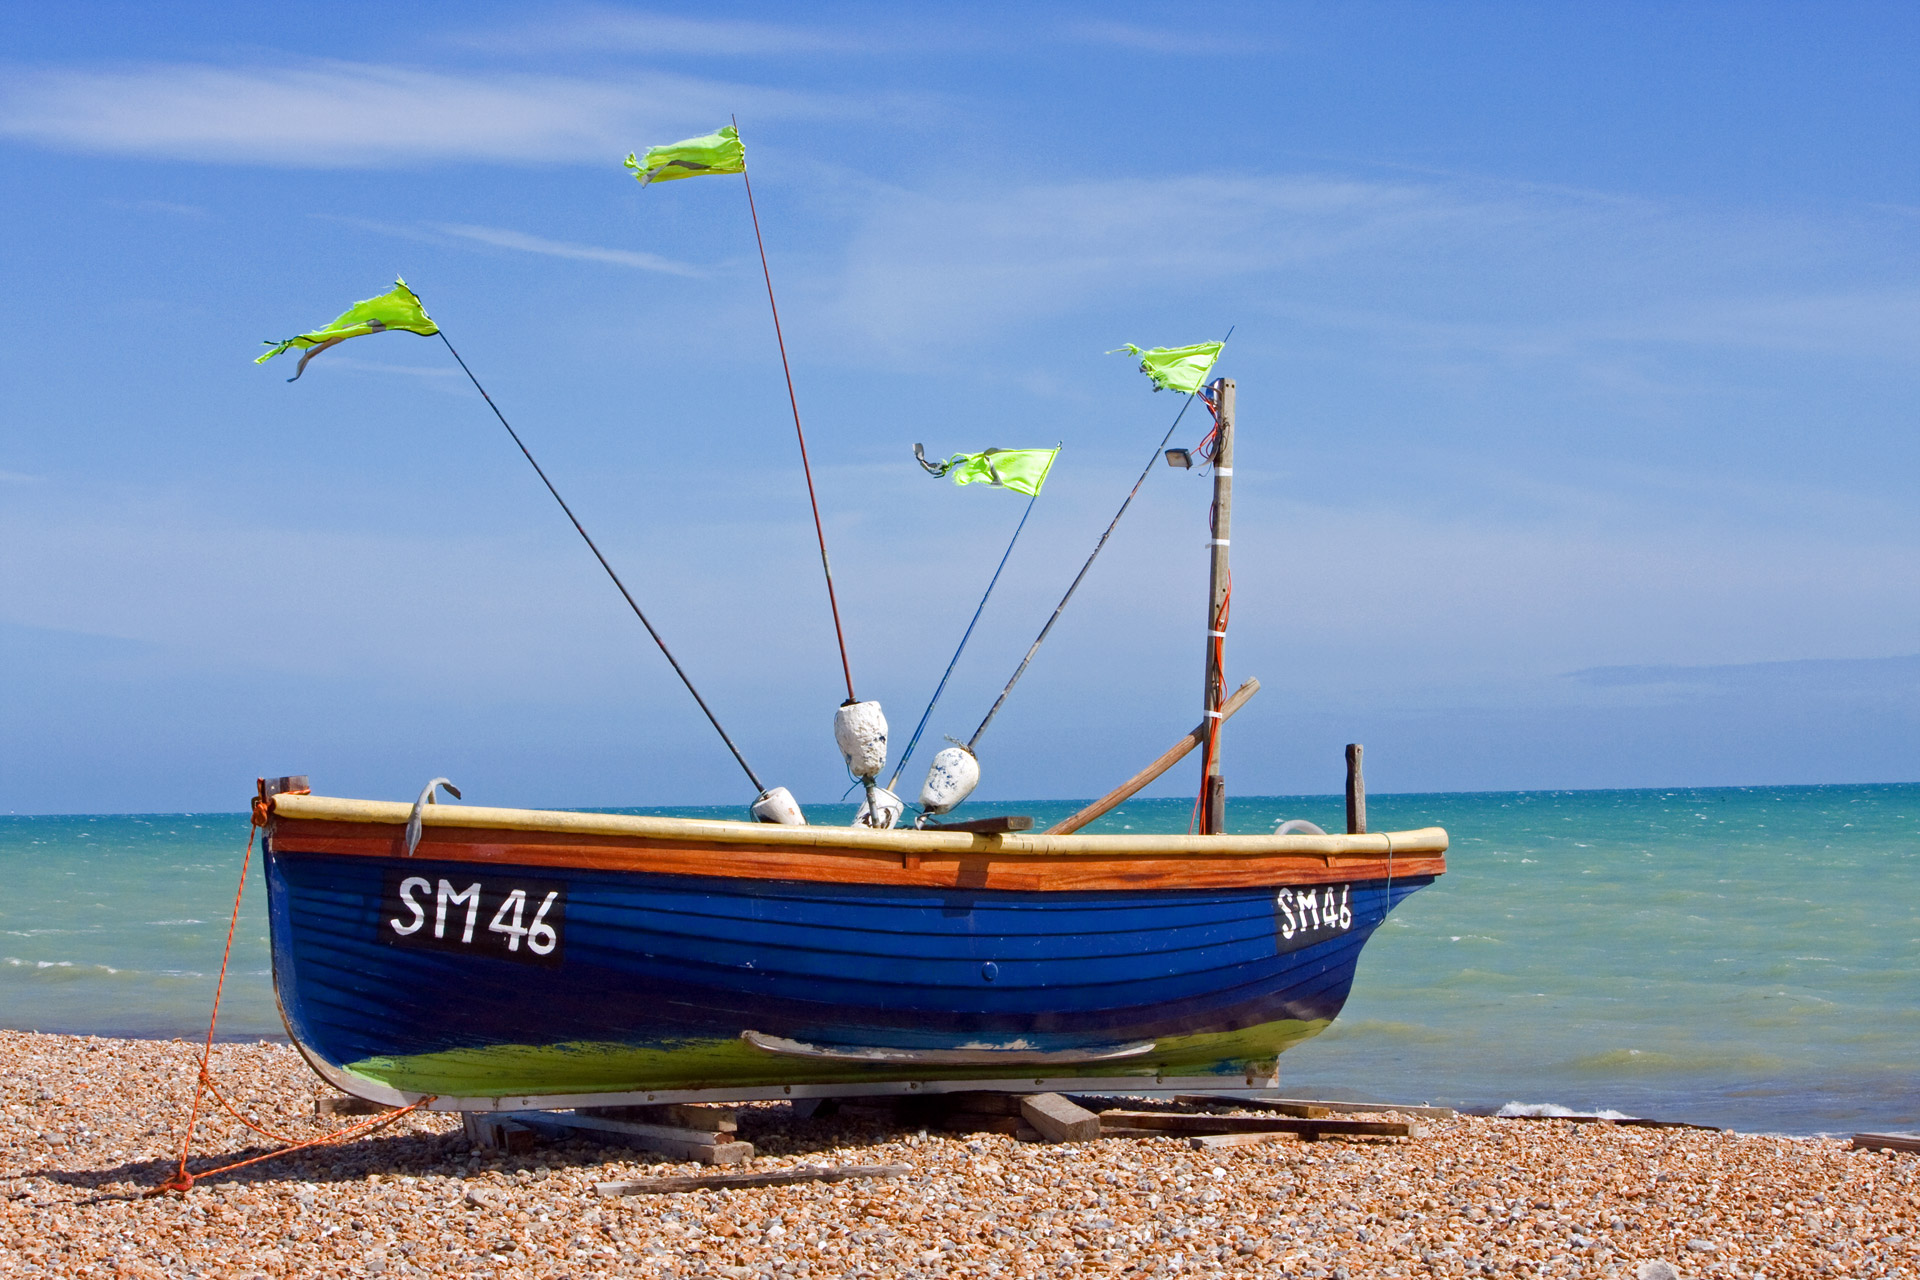 Wooden Fishing Boat Free Stock Photo - Public Domain Pictures